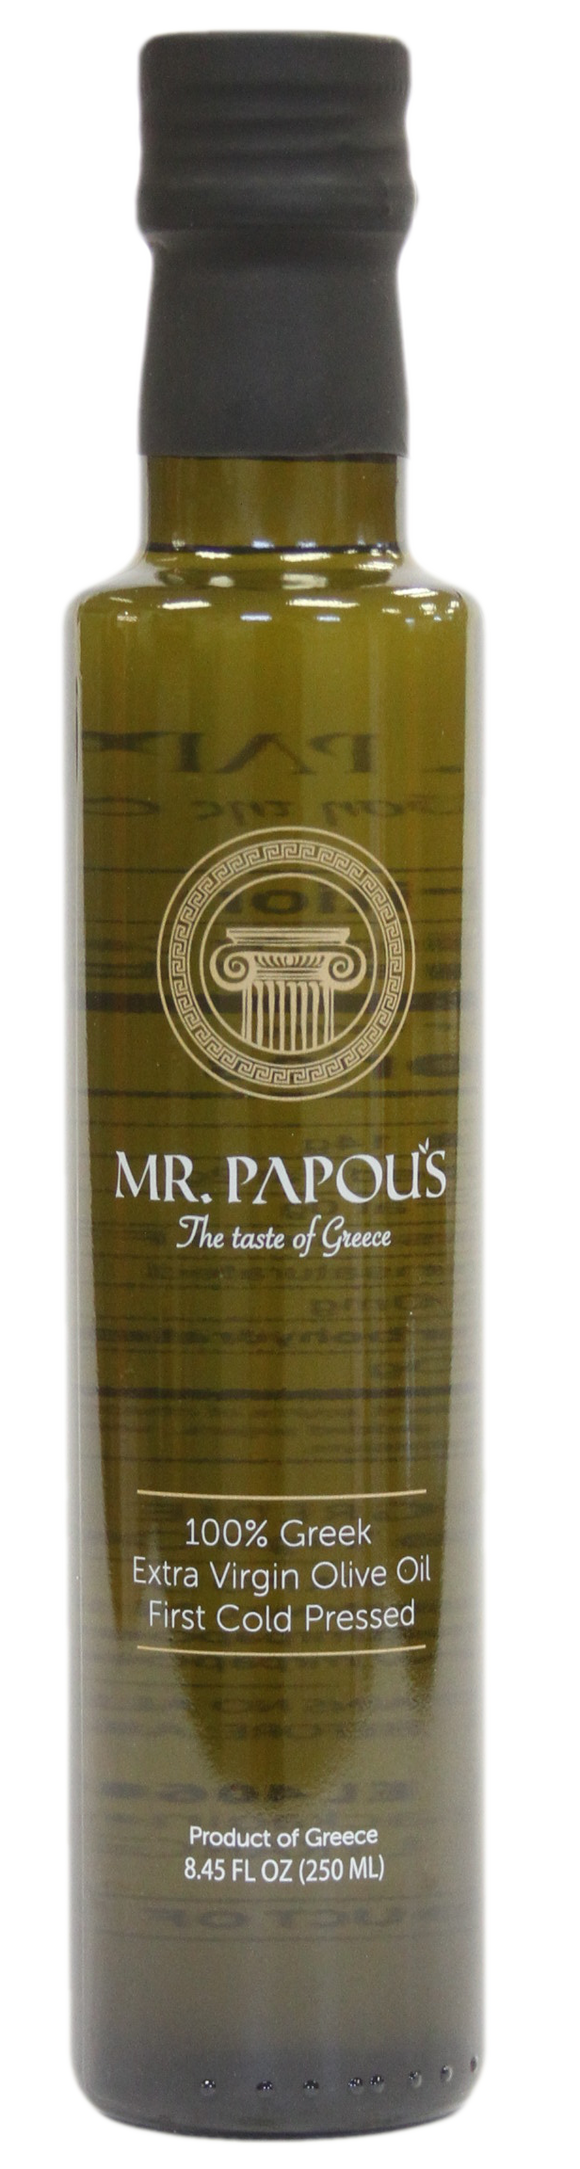 Mr. Papou's | 250 ml - 8.5 fl oz | Extra Virgin Olive Oil | First Cold Pressed | Family Owned | Harvested in Corinth, Greece |